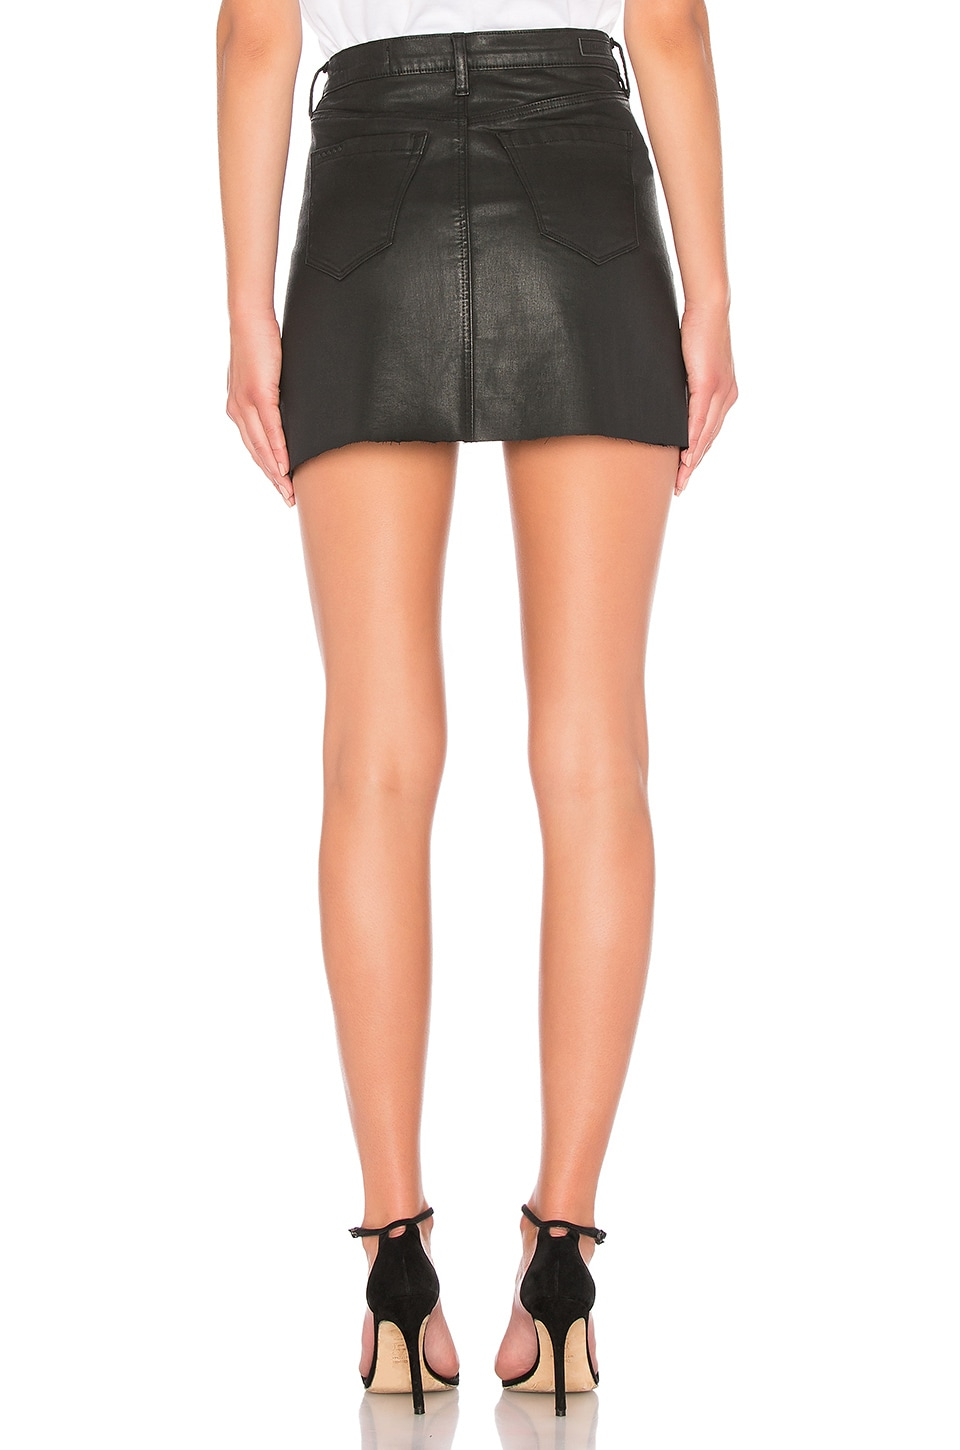 Frayed Edge Mini Skirt, view 3, click to view large image.